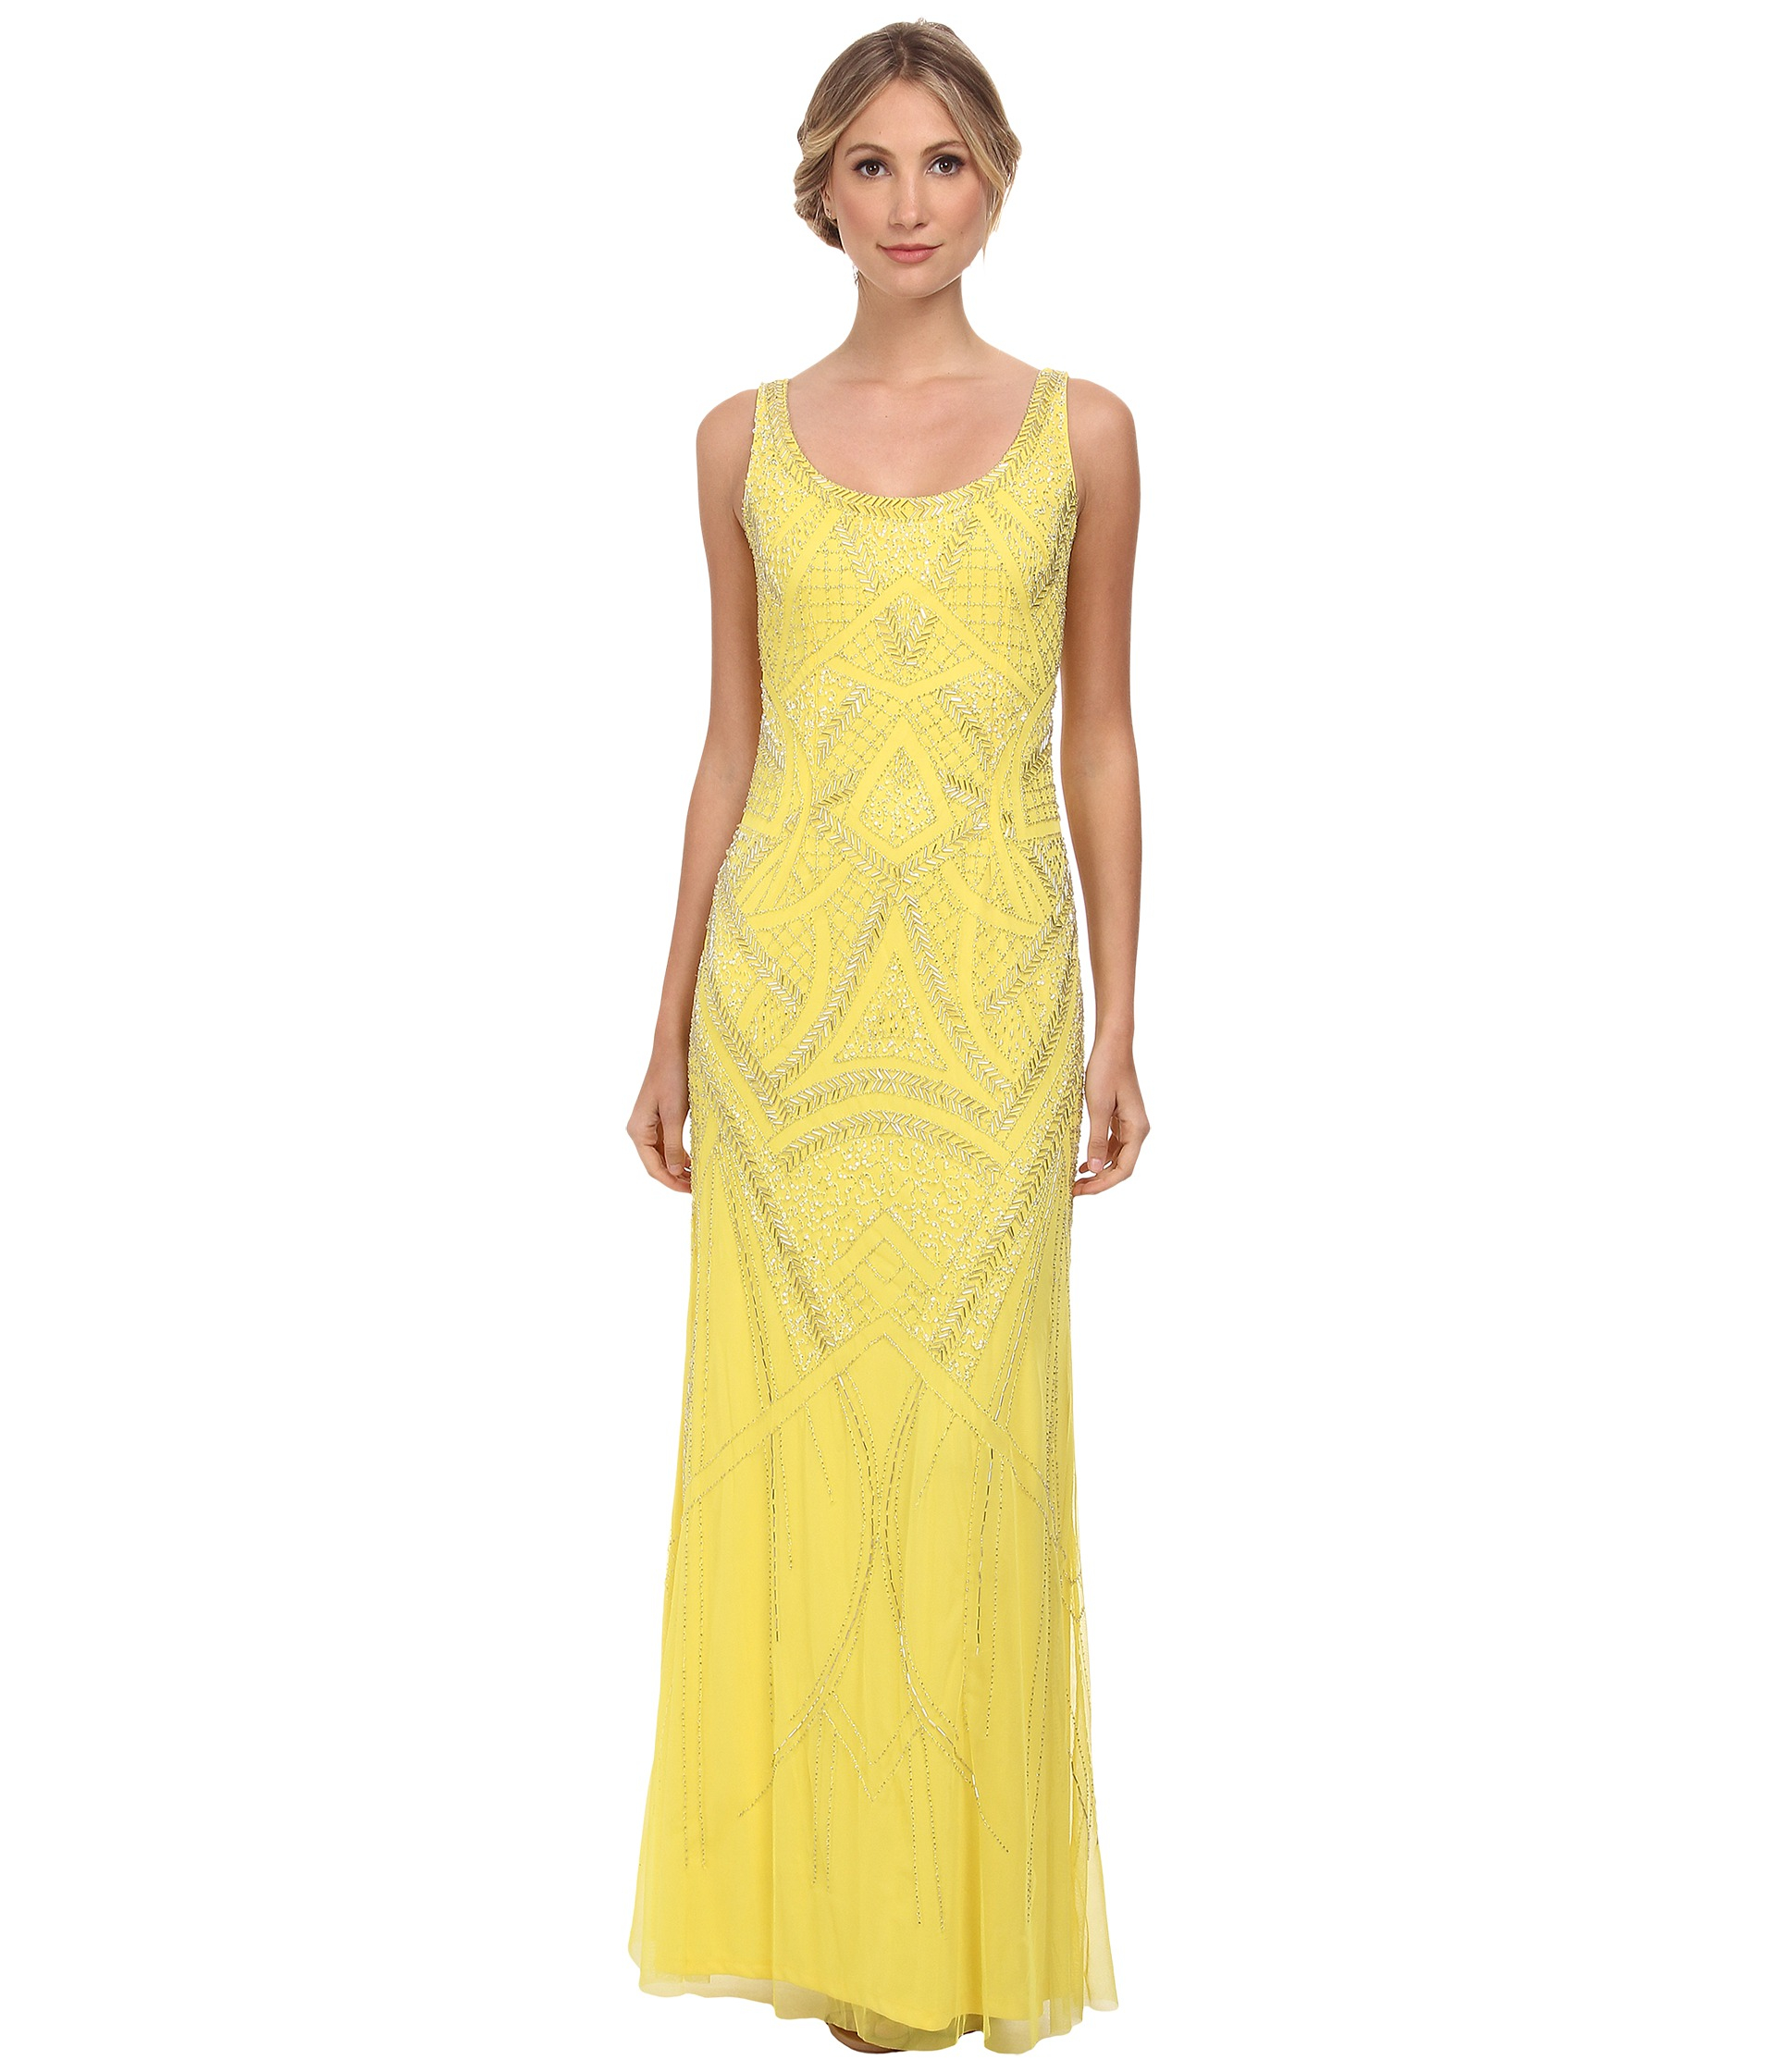 Lyst - Adrianna Papell Sleeveless Fully Beaded Gown in Yellow